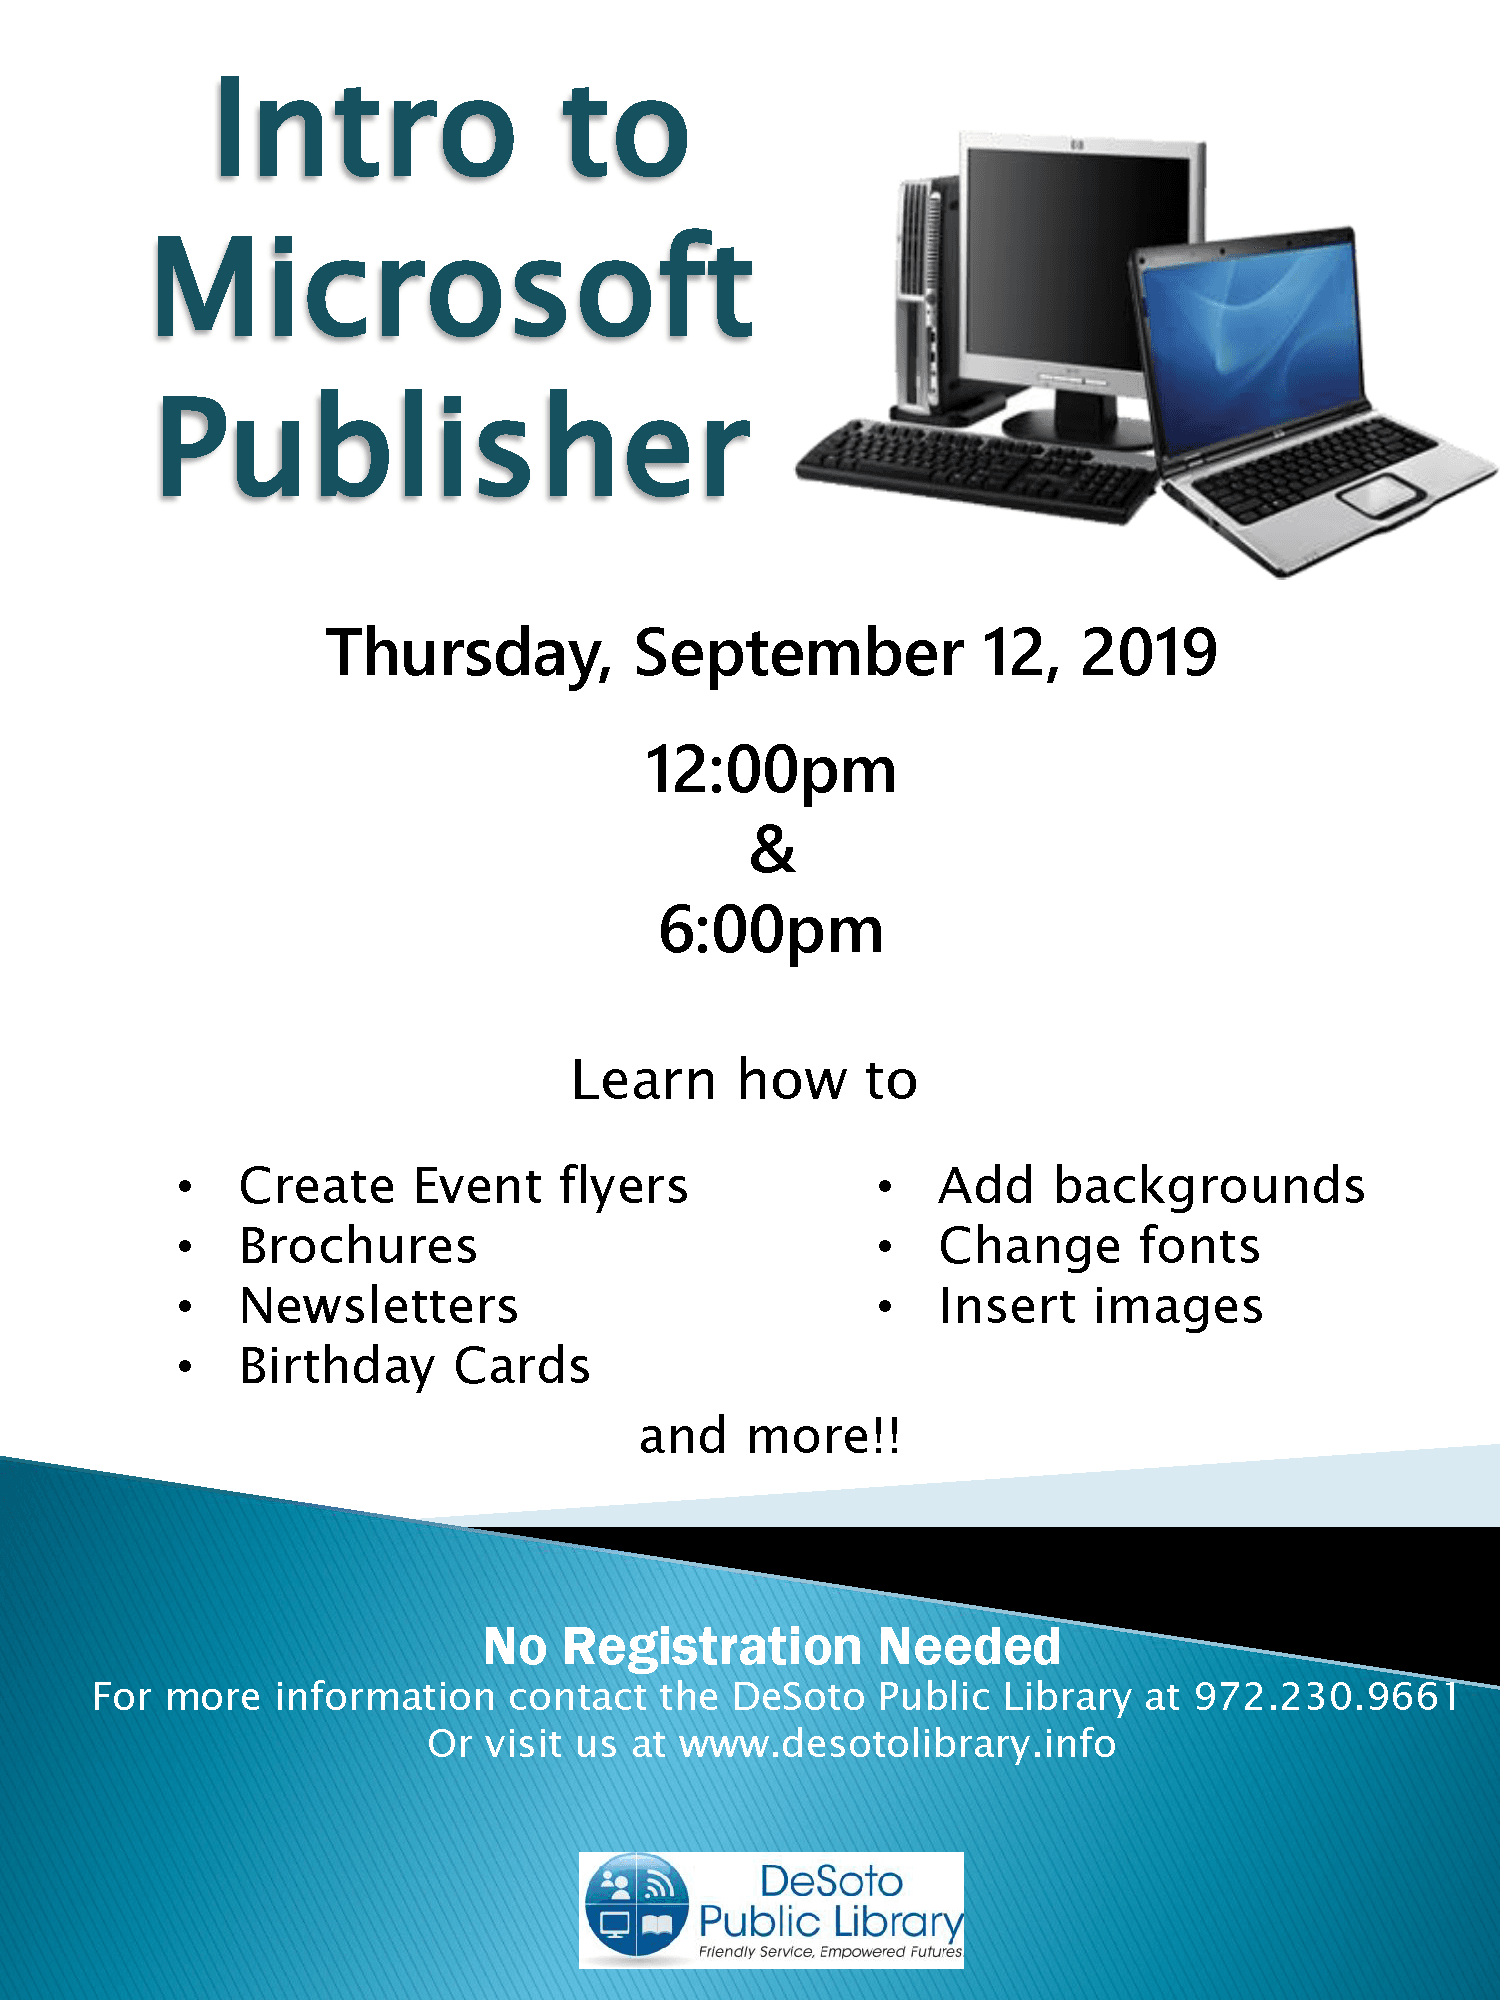 Intro to Microsoft Publisher September 2019